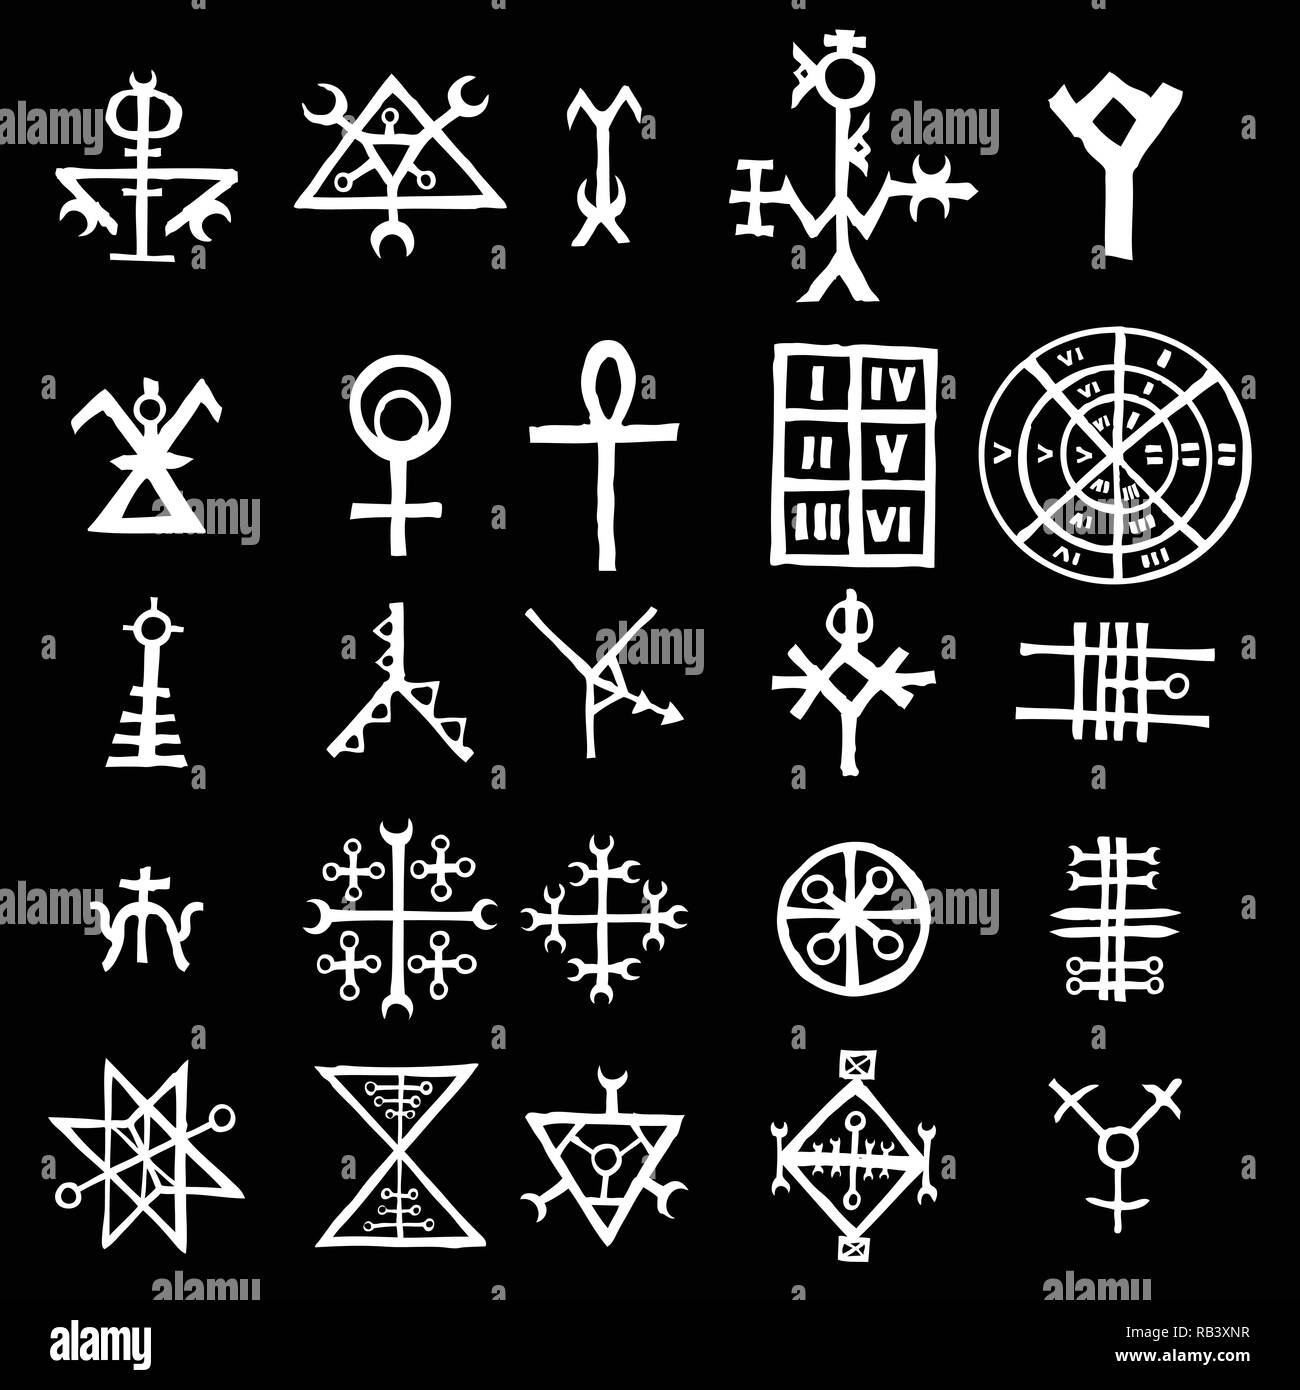 Wiccan symbols imaginary cross symbols, inspired by antichrist pentagram and witchcraft. Vector. - Stock Vector